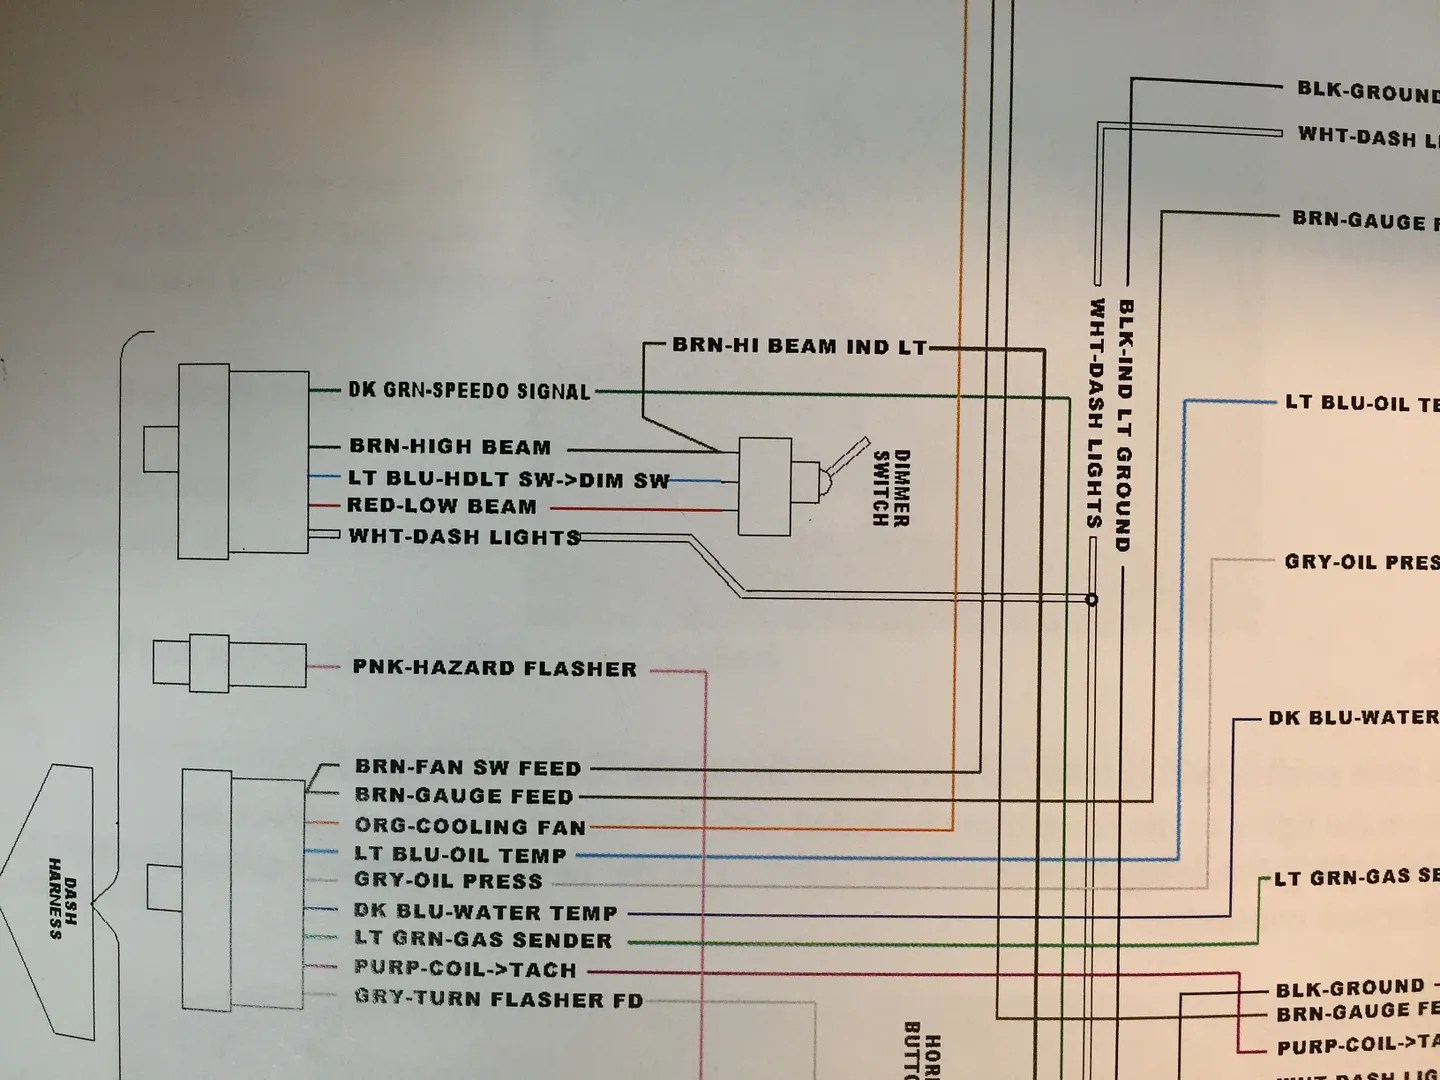 Wiring Diagram Wiring Imgs Moreover Single Pole Double Throw Switch